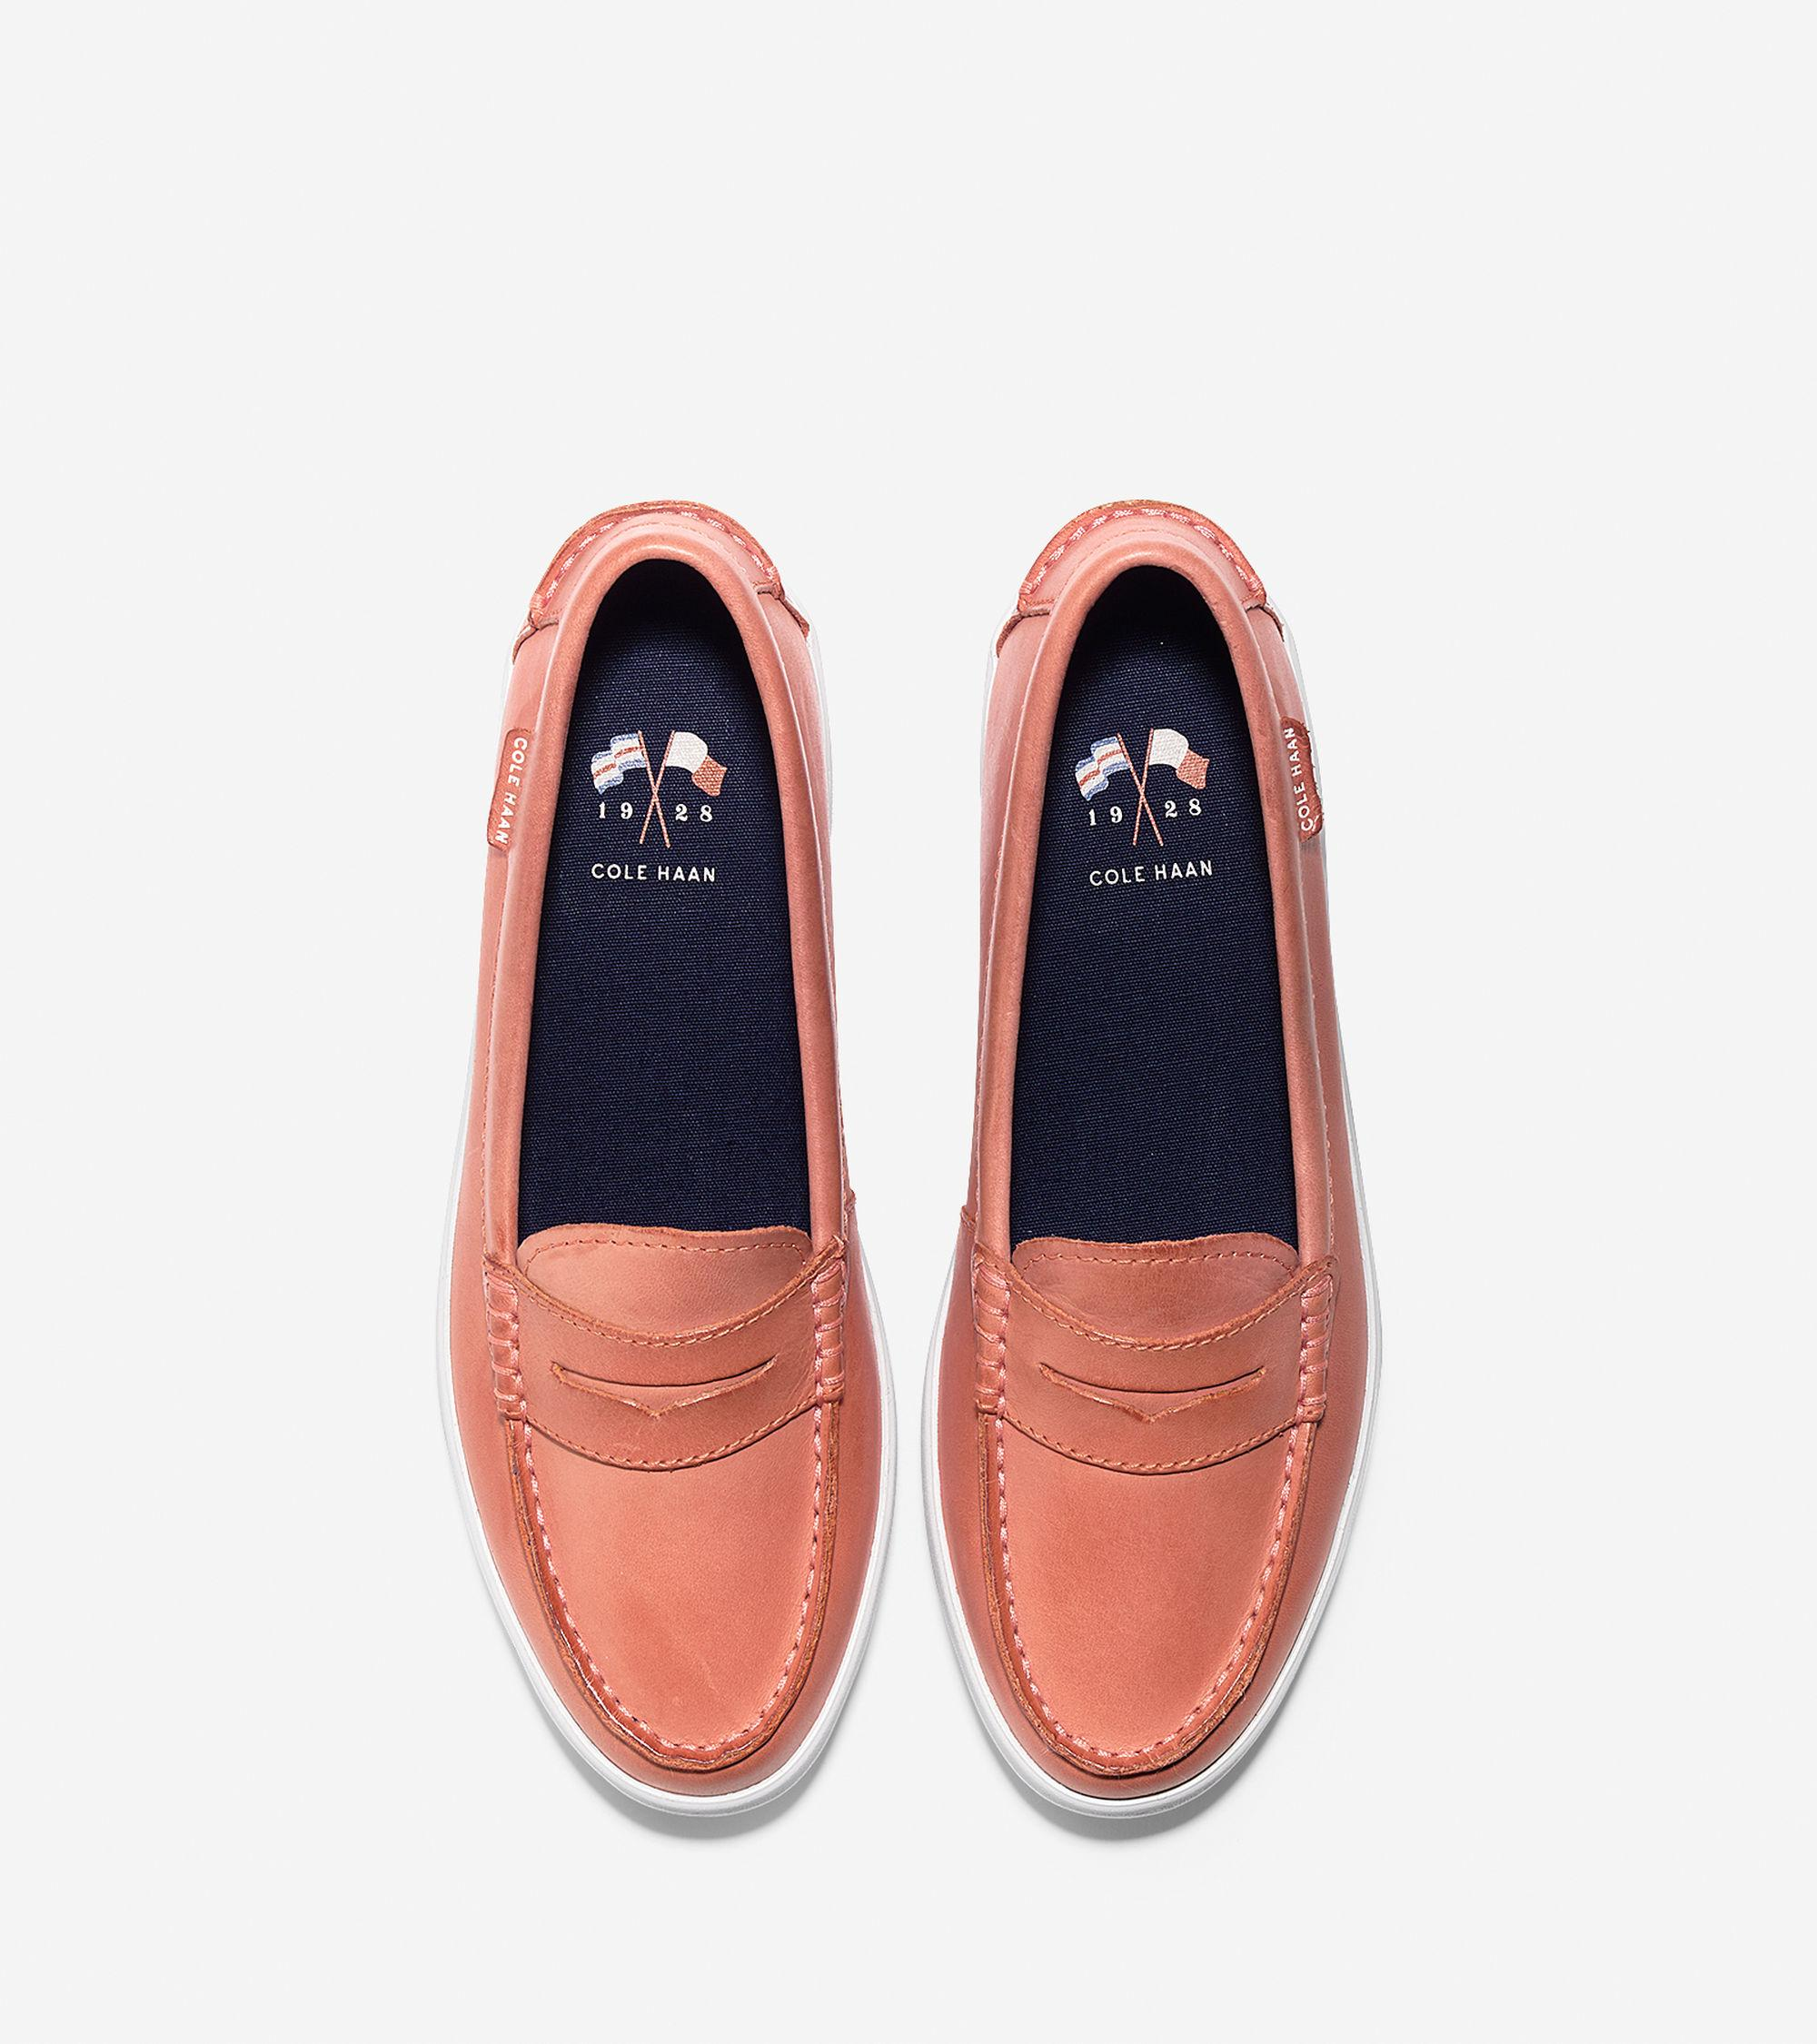 Cole Haan Womens Shoes D